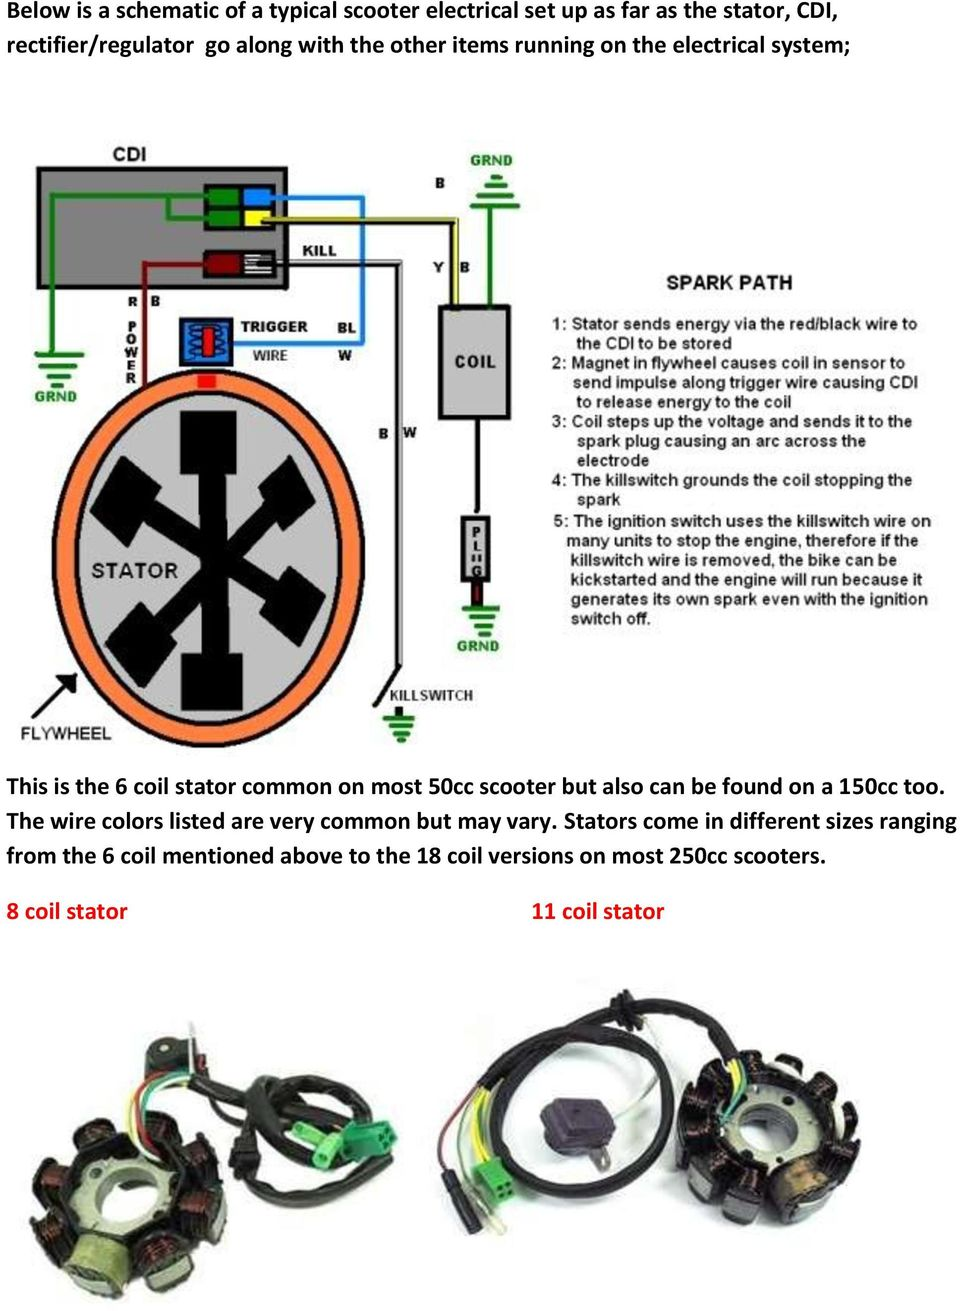 8 Coil Stator 11 Pdf Cdi Wiring Diagram Free Download Schematic Also Can Be Found On A 150cc Too The Wire Colors Listed Are Very Common